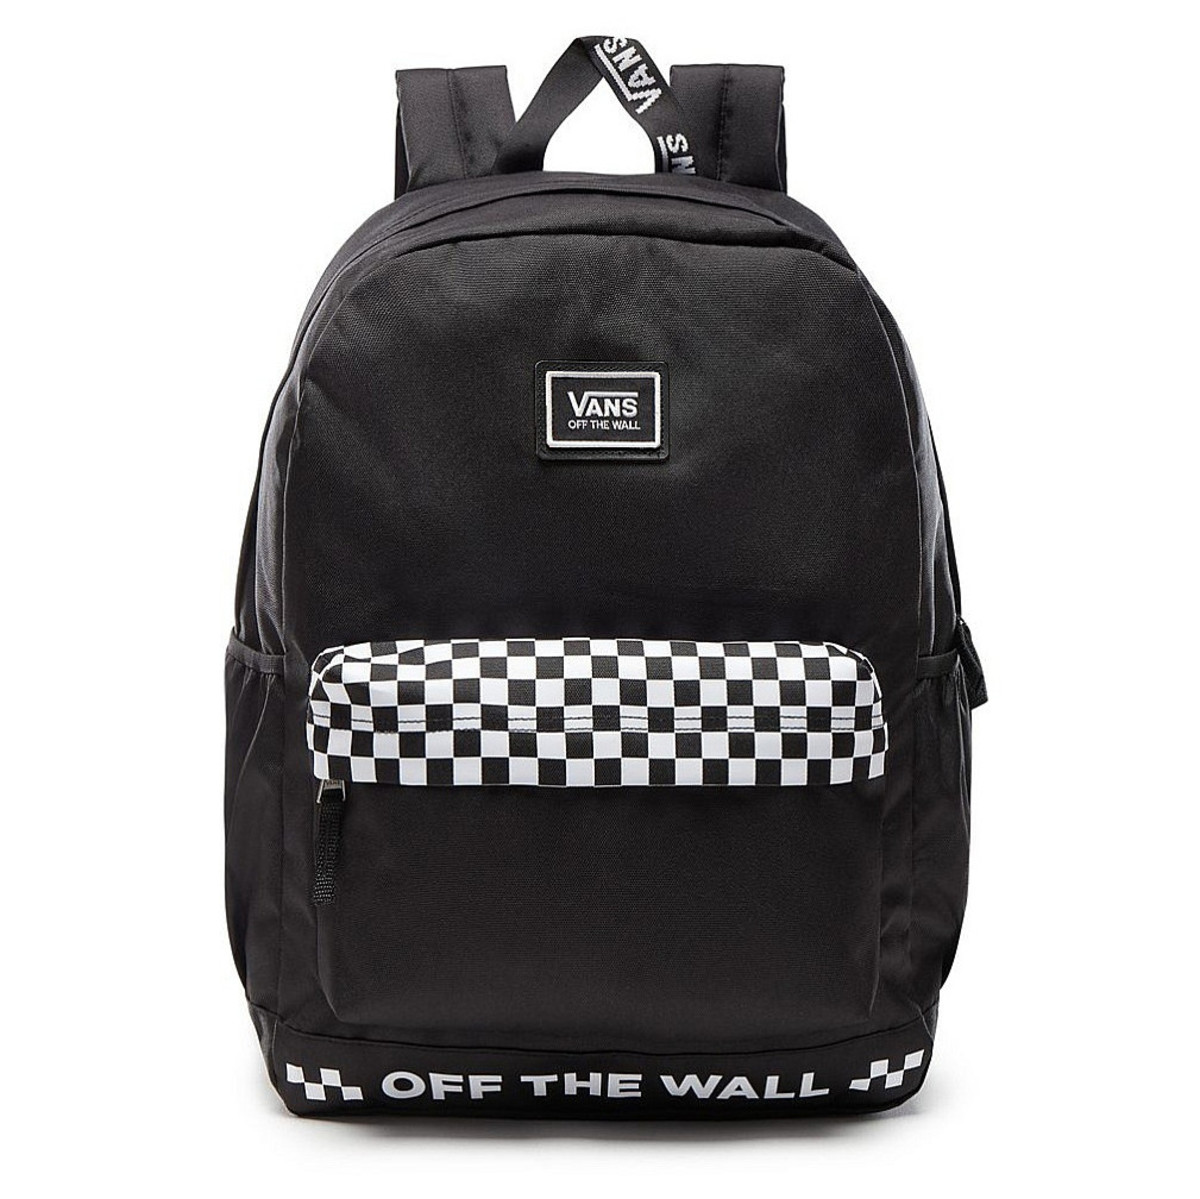 batoh VANS - WM SPORTY REALM PLUS - Black - VN0A3PBIBLK